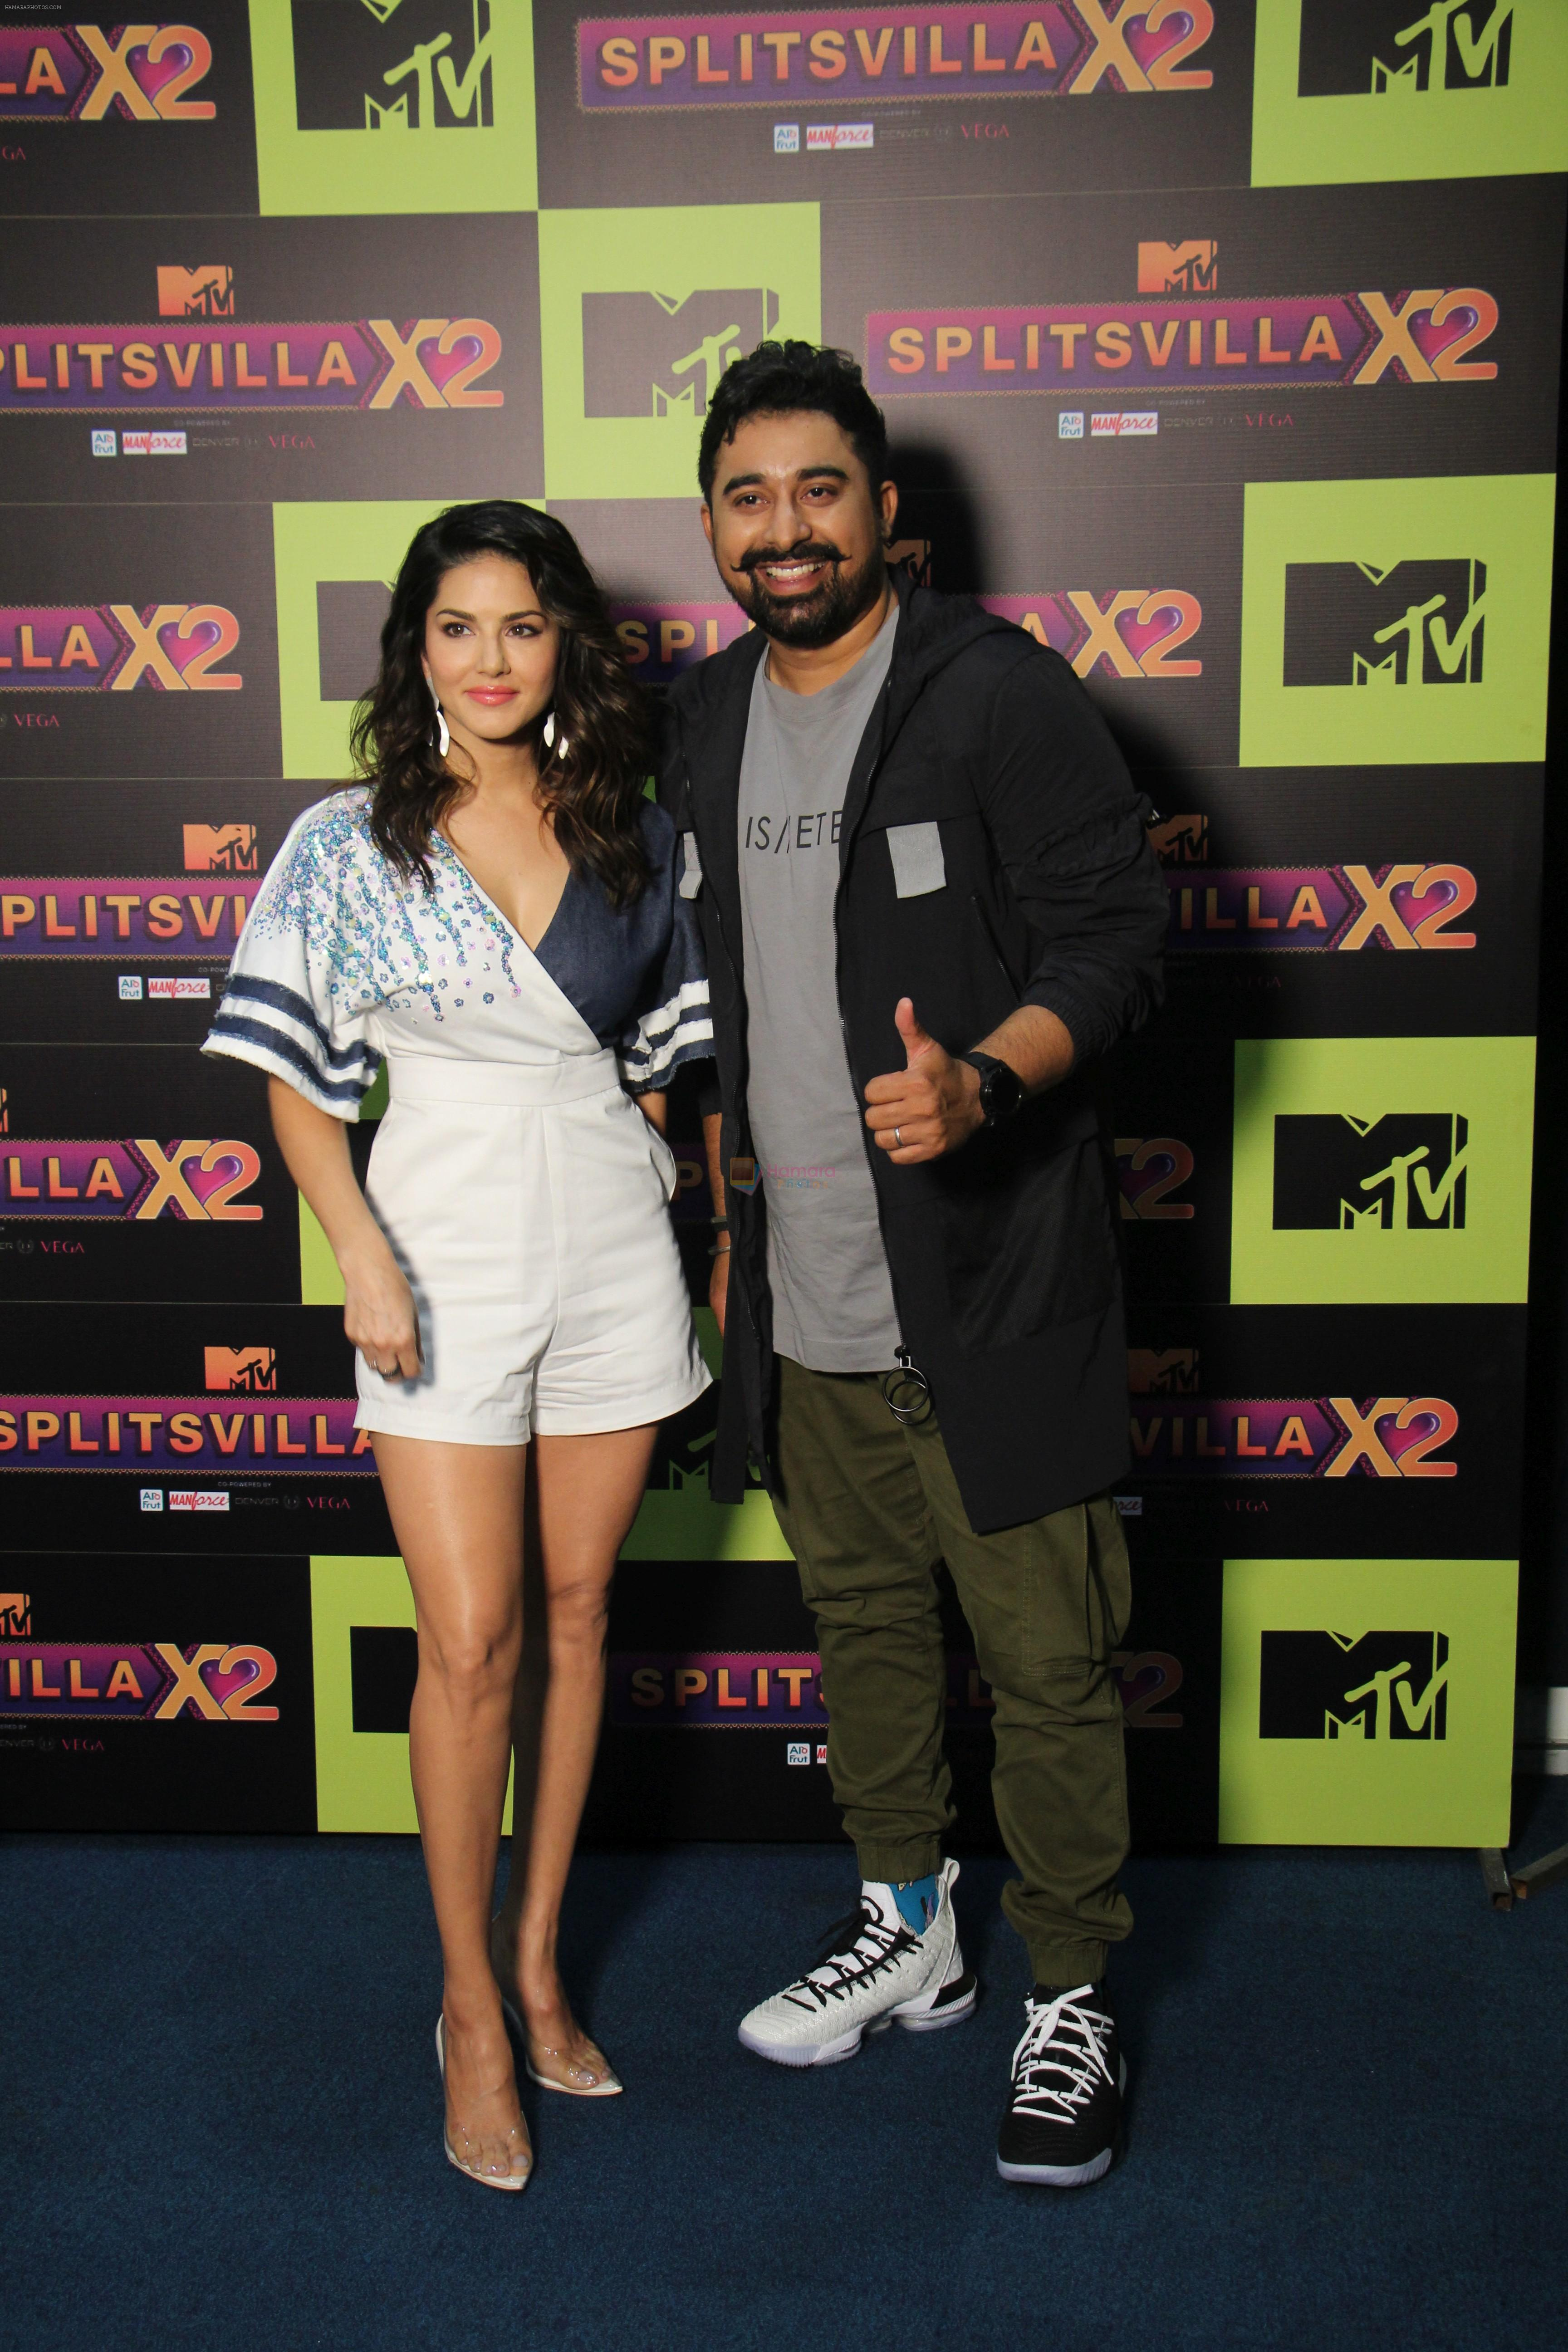 Rannvijay Singh, Sunny Leone at the Launch of Mtv splitsvilla on 17th July 2019